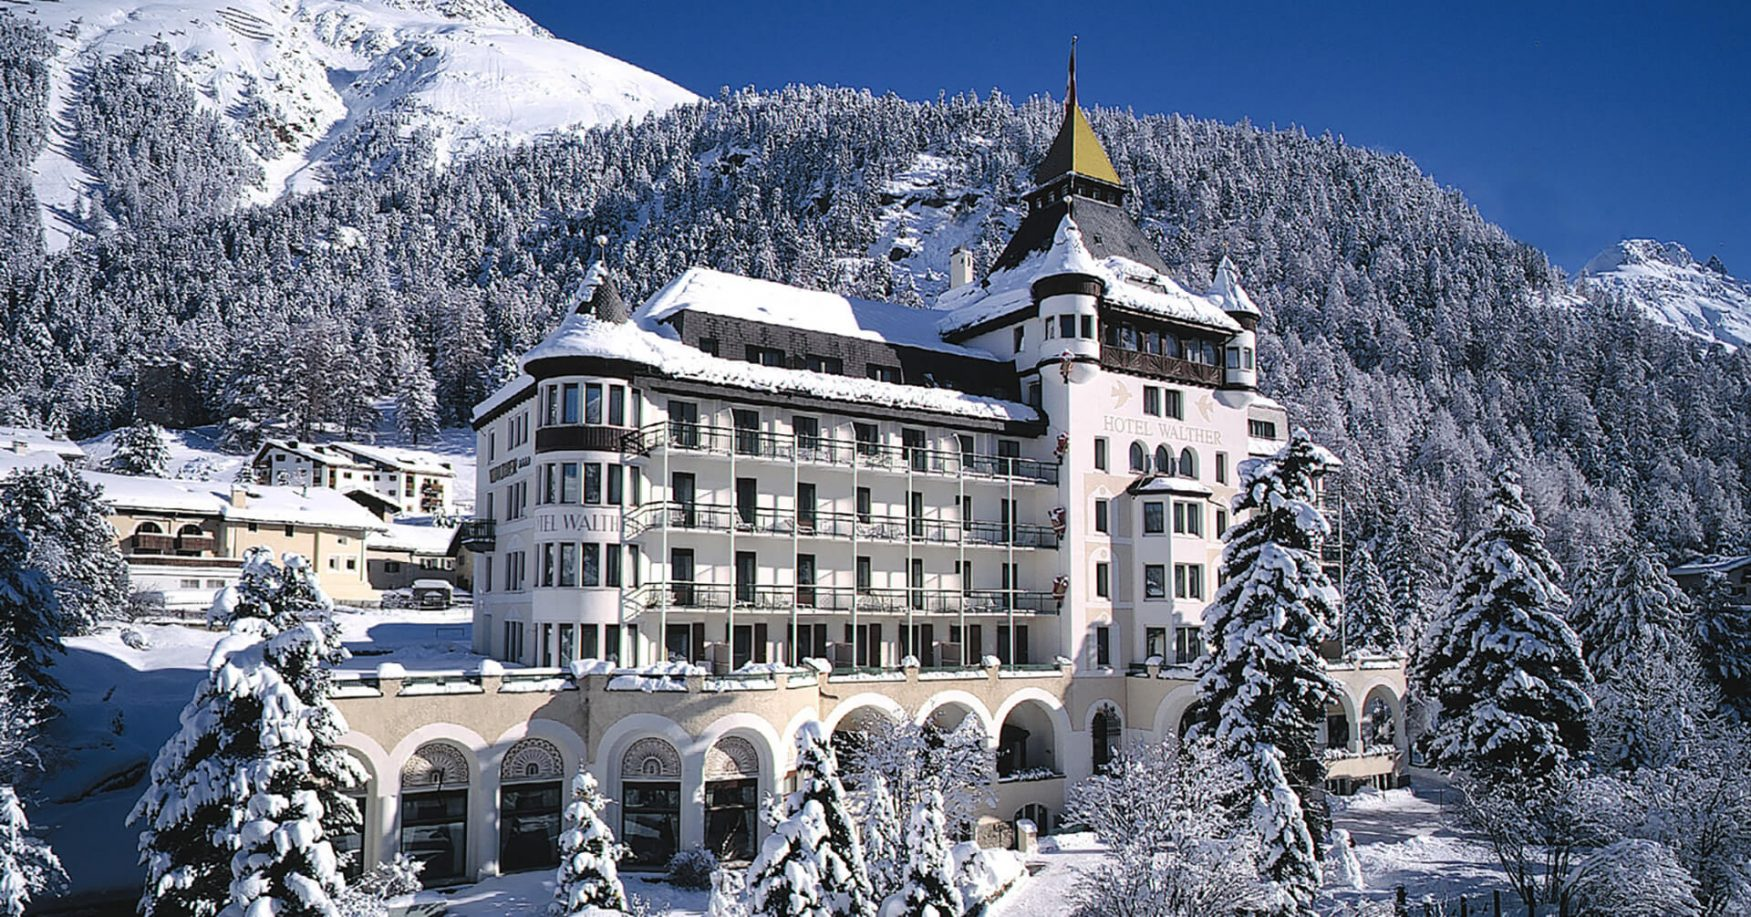 Ein Traum auch im Winter: Hotel Walther in Pontresina, Foto: hotelwalther.ch